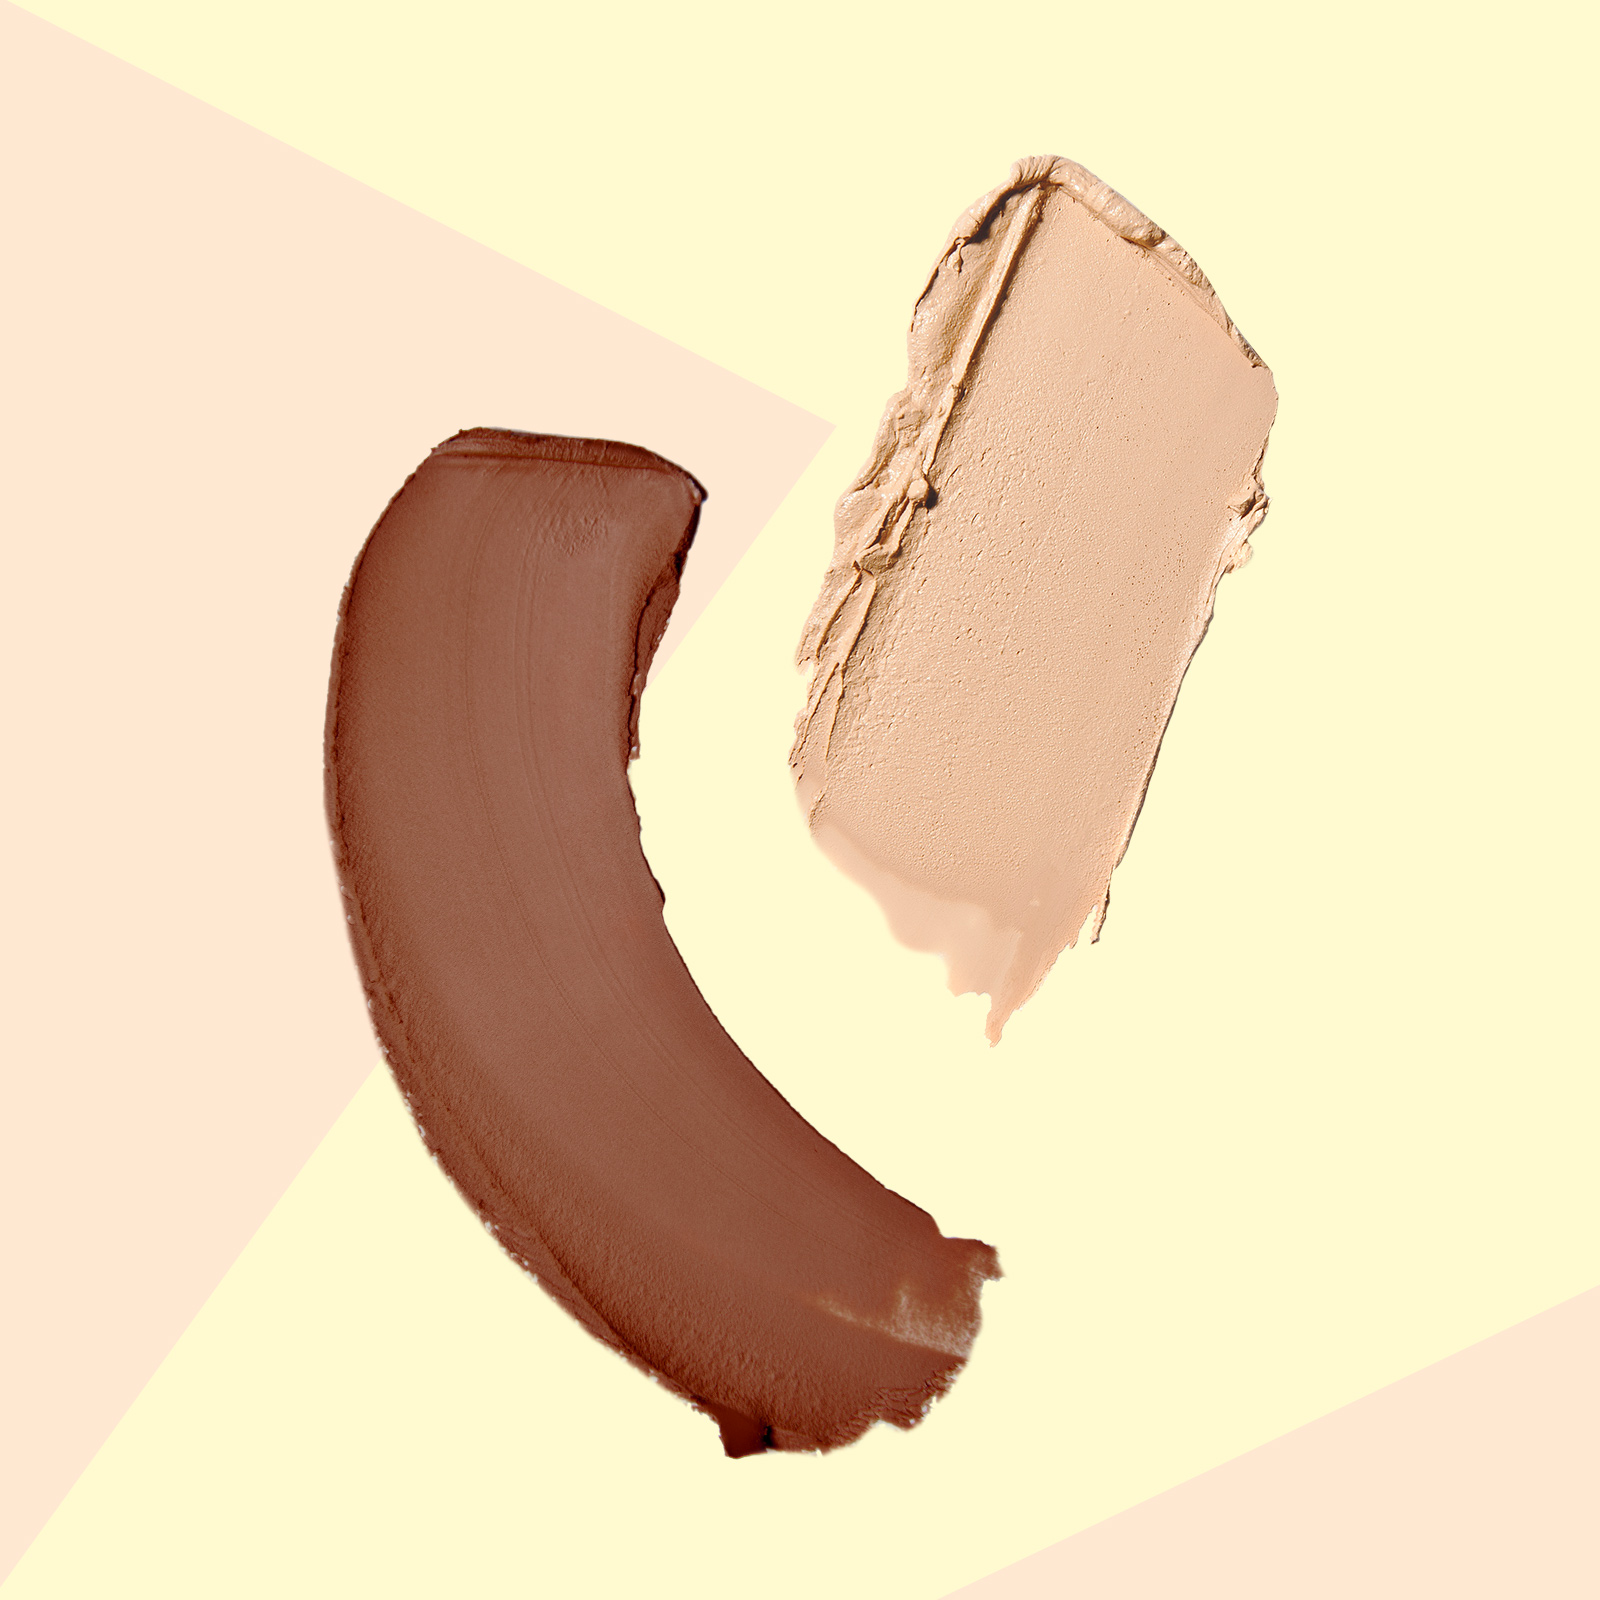 The Best Concealers for Covering Up Cystic Acne